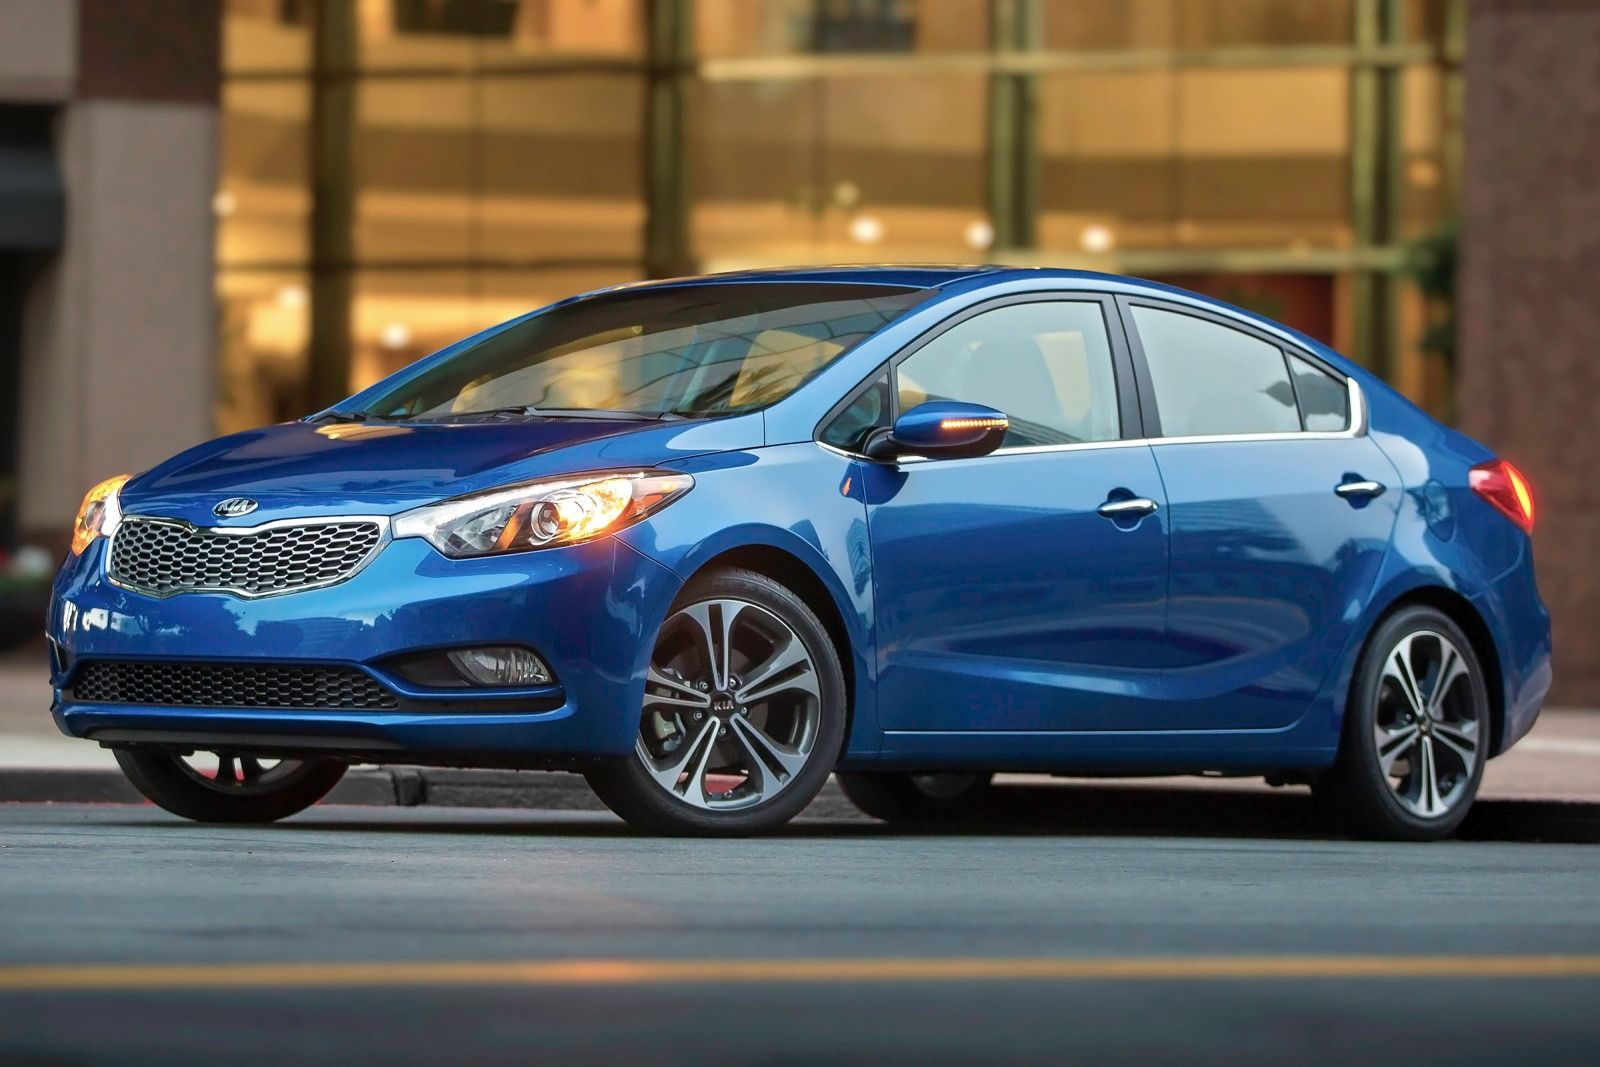 kia cerato 2015 kia forte 2015 lujo confort tecnolog a y aires deportivos lista de carros. Black Bedroom Furniture Sets. Home Design Ideas